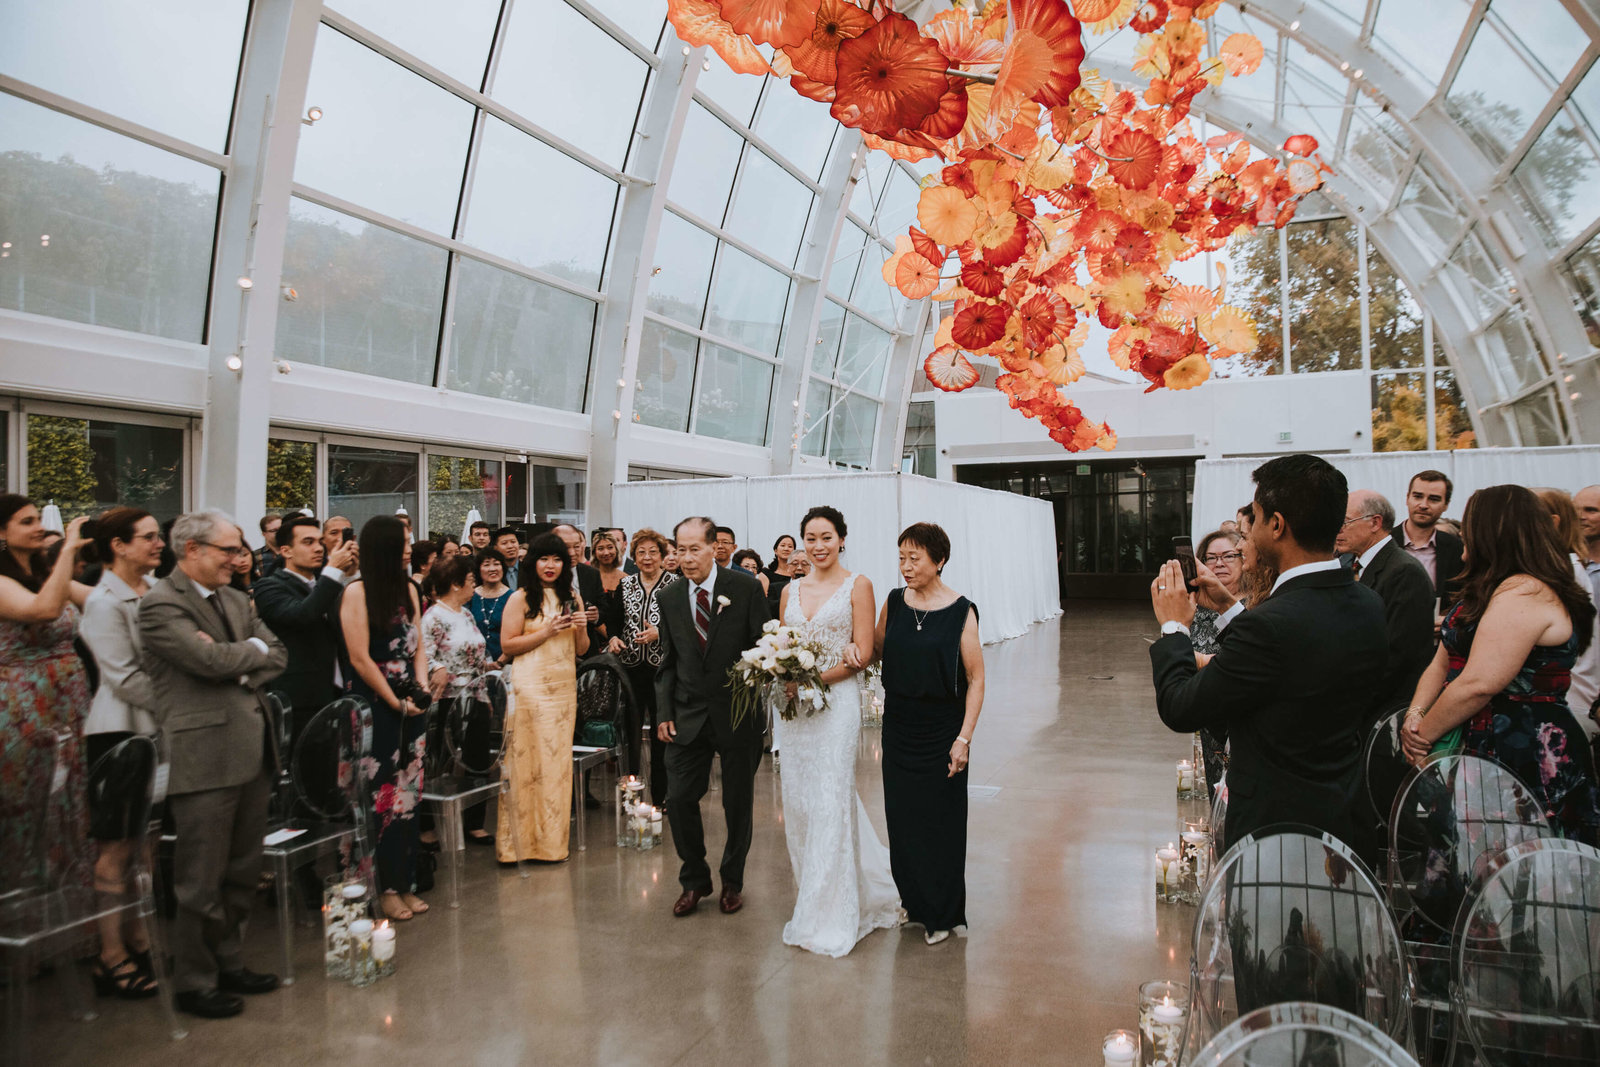 chihuly-garden-and-glass-wedding-sharel-eric-by-Adina-Preston-Photography-2019-324 2